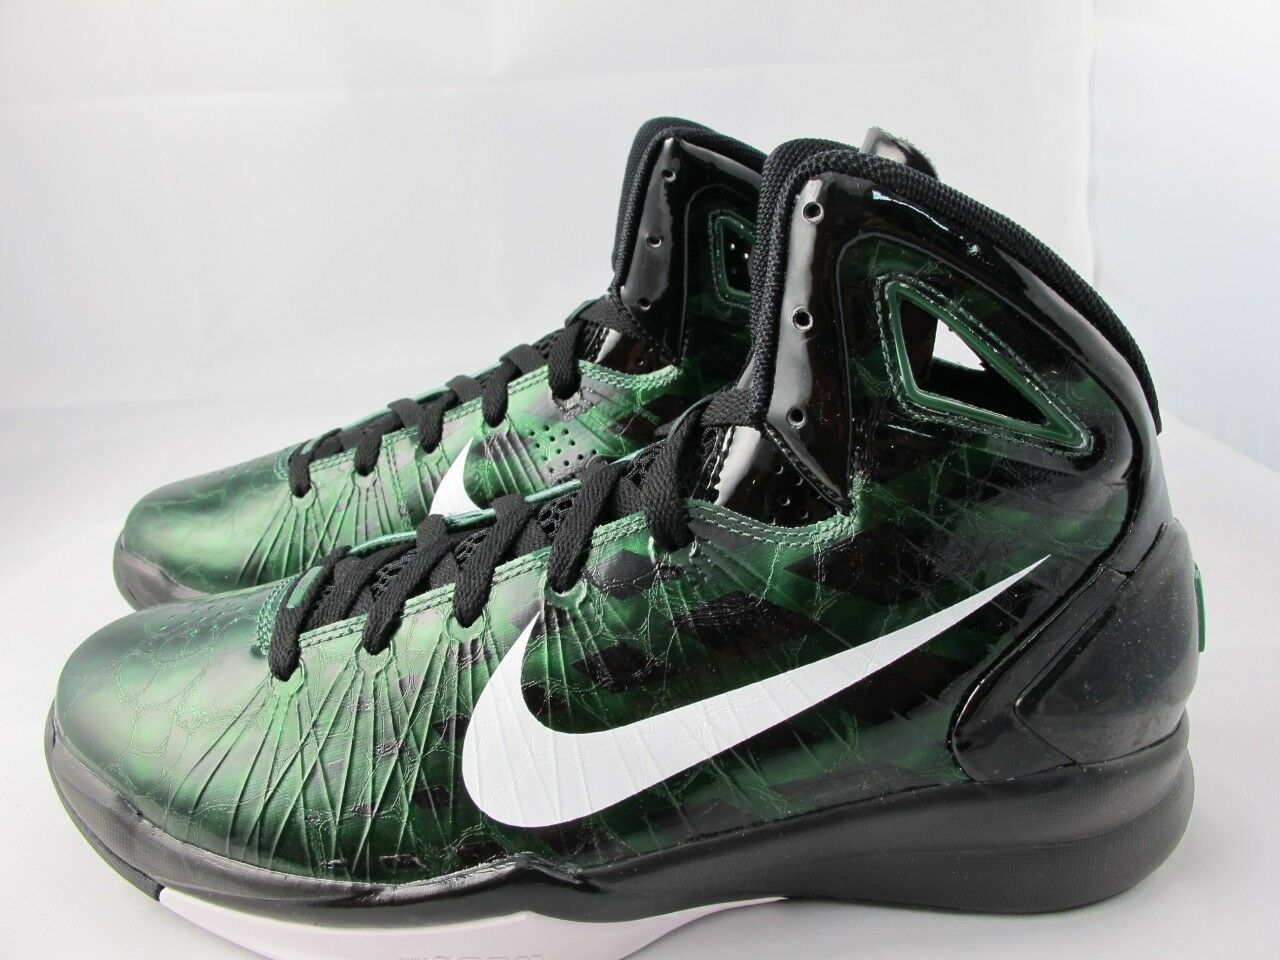 NEW MEN'S NIKEHYPERDUNK 2010  407625-301